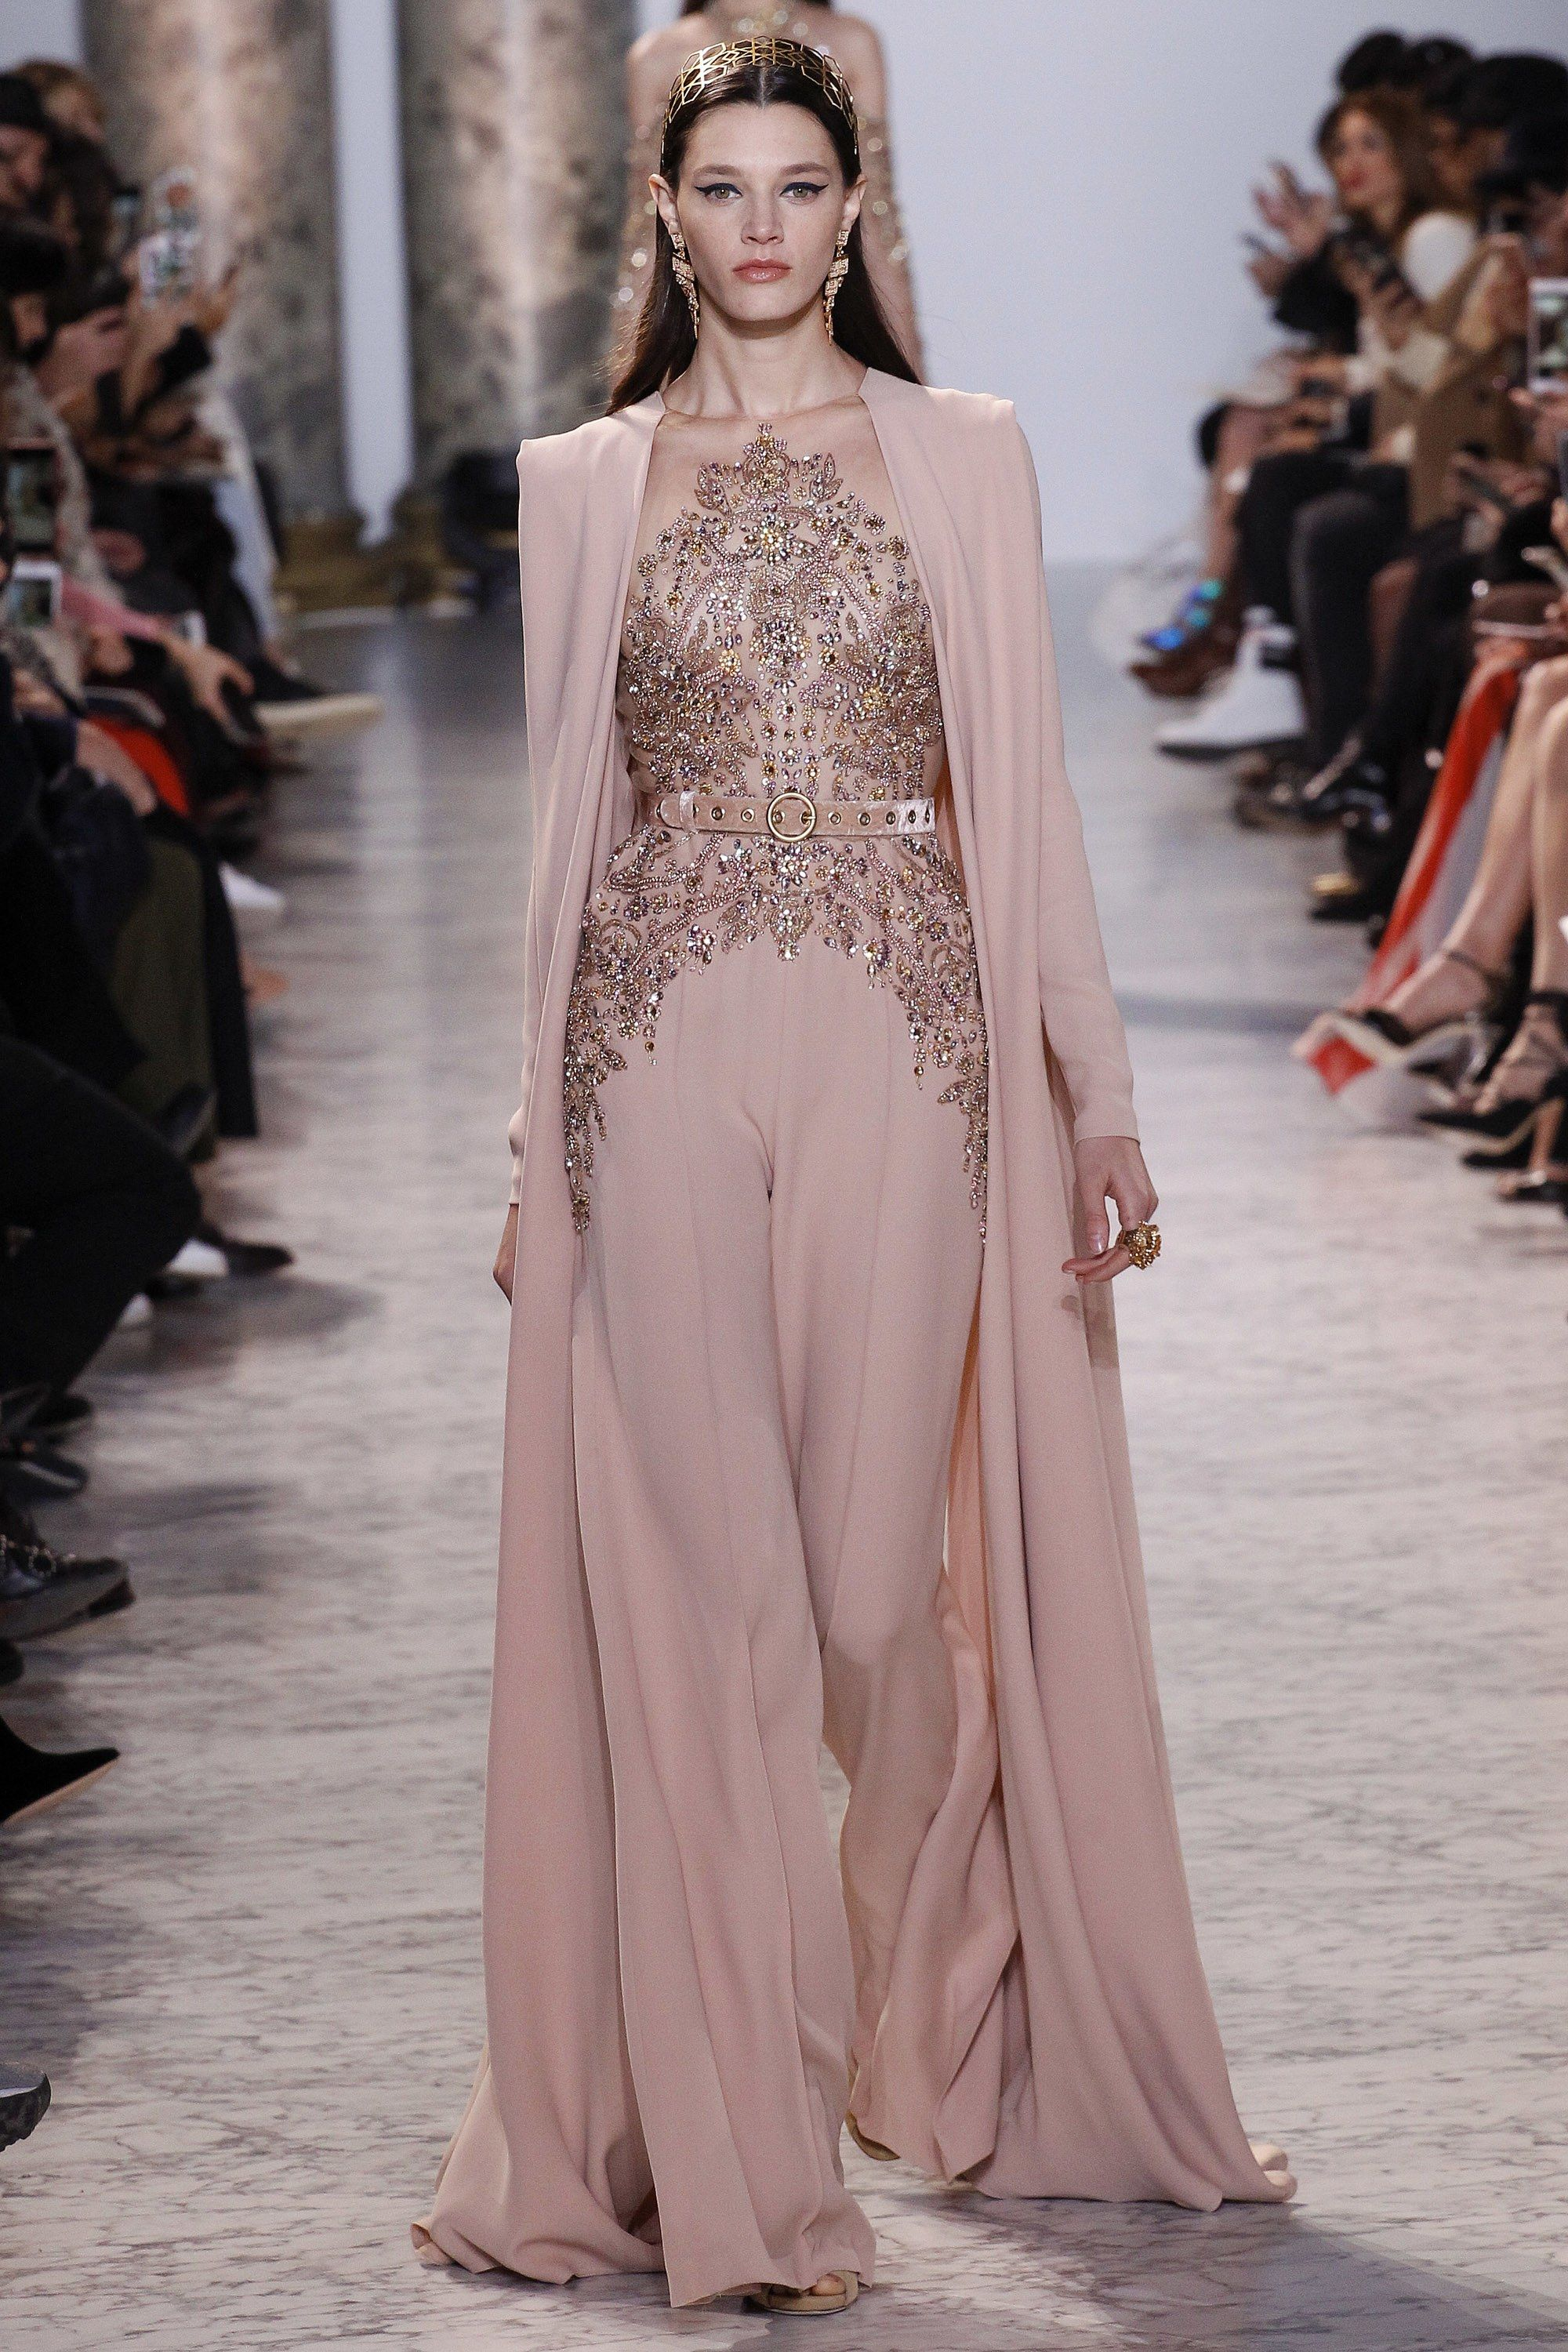 Elie saab spring 2017 couture fashion show elie saab for Couture clothing